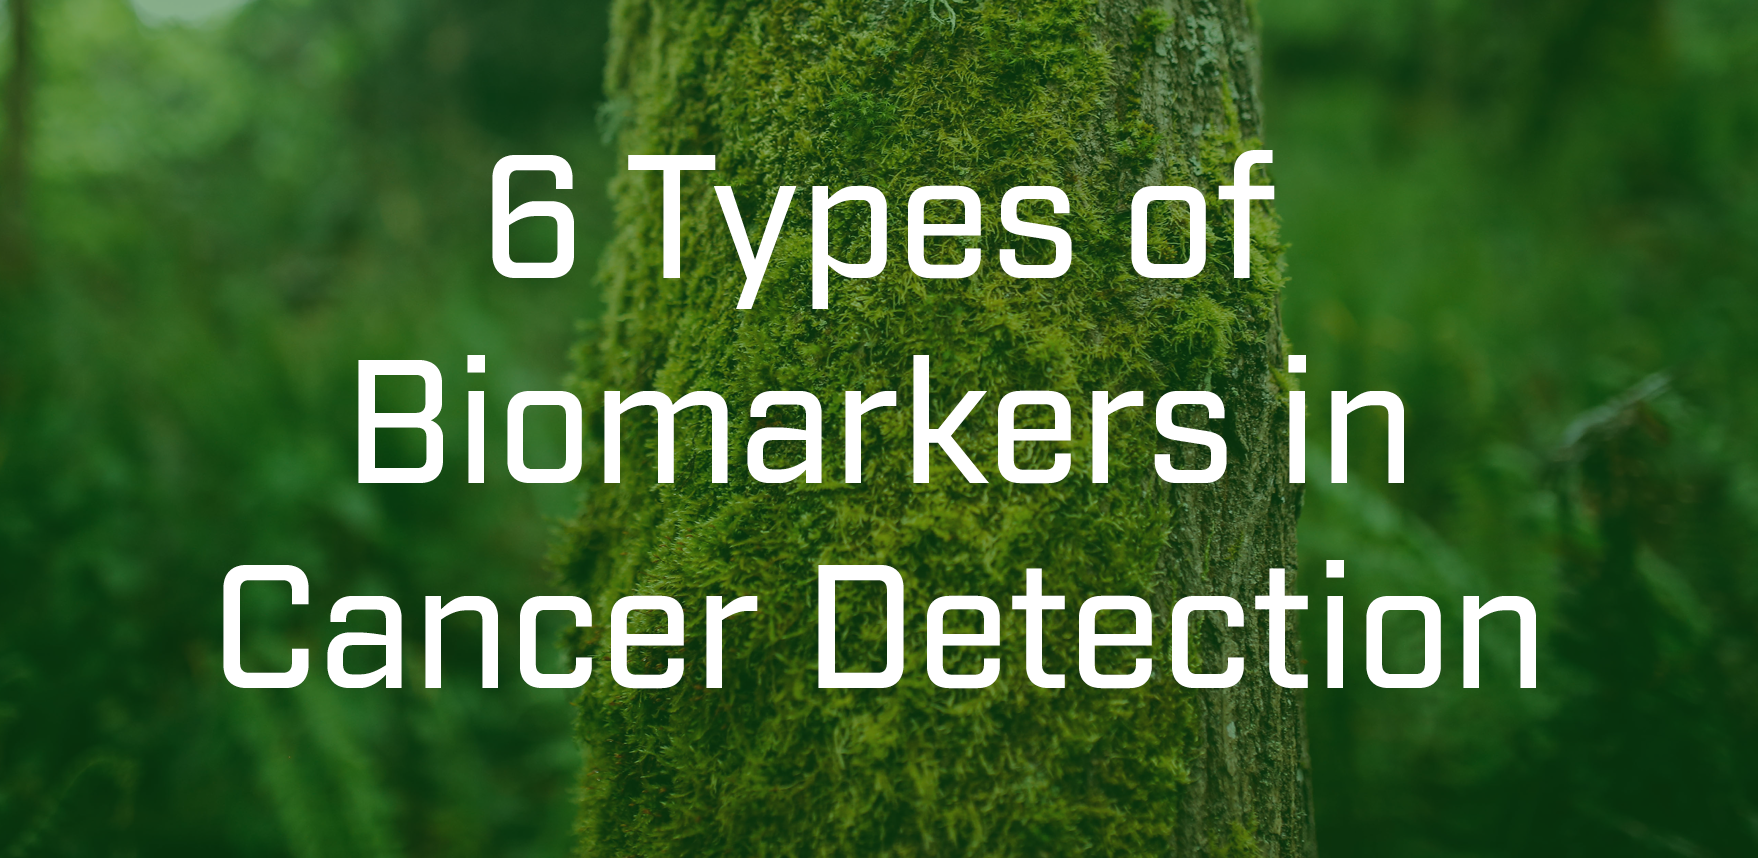 cancer gene detection Research on classification and detection of  colon cancer, gene  it provides a shortcut for the development of anti-cancer drugs tumor detection is.